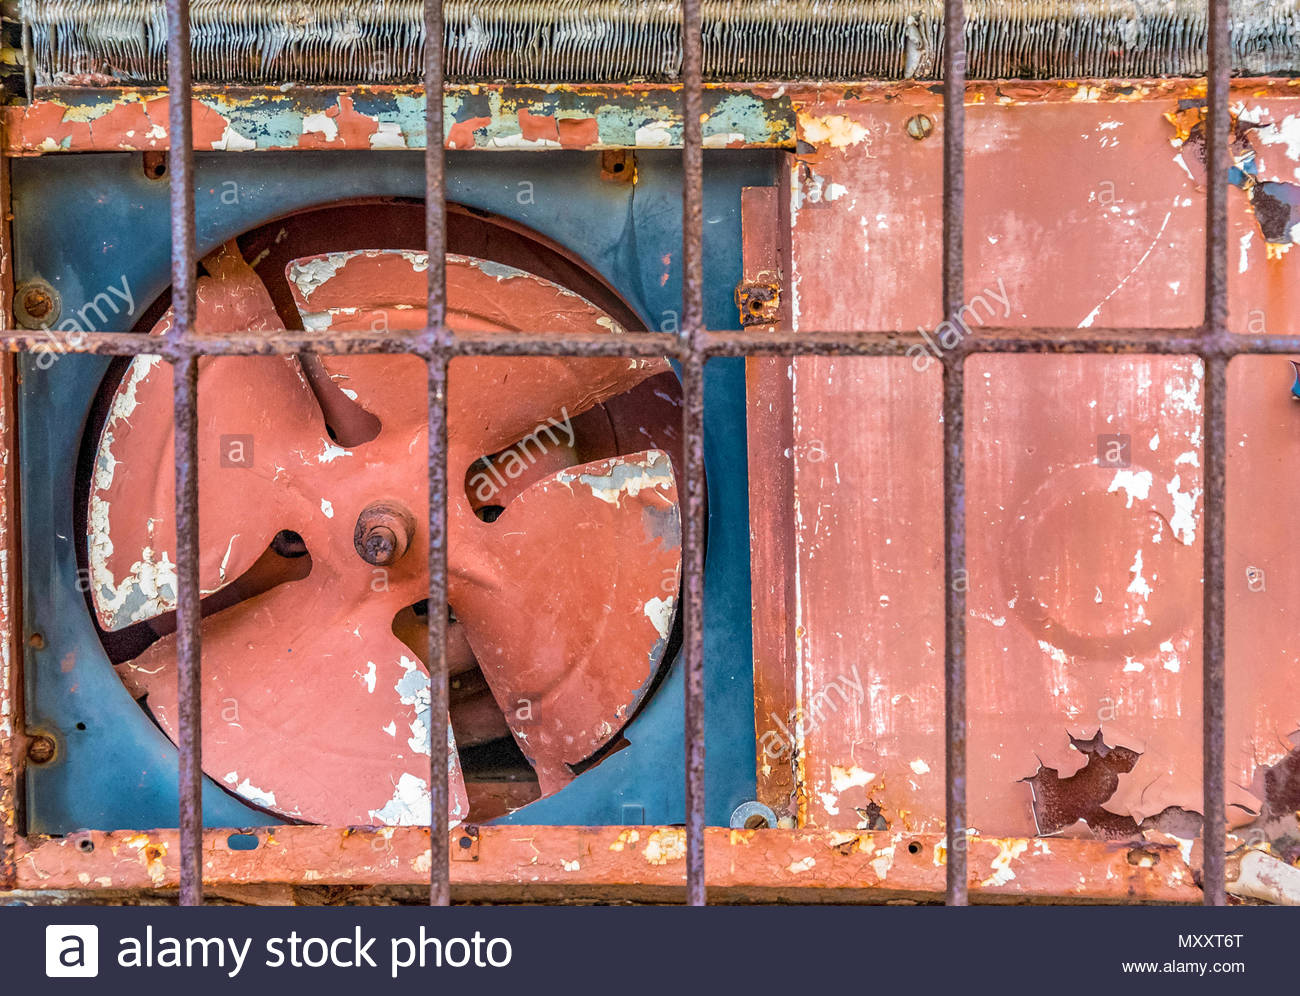 Oudoor side of an old rusty red air conditioner. Cubans manage to get the most incredible pieces of equipment in working condition - Stock Image